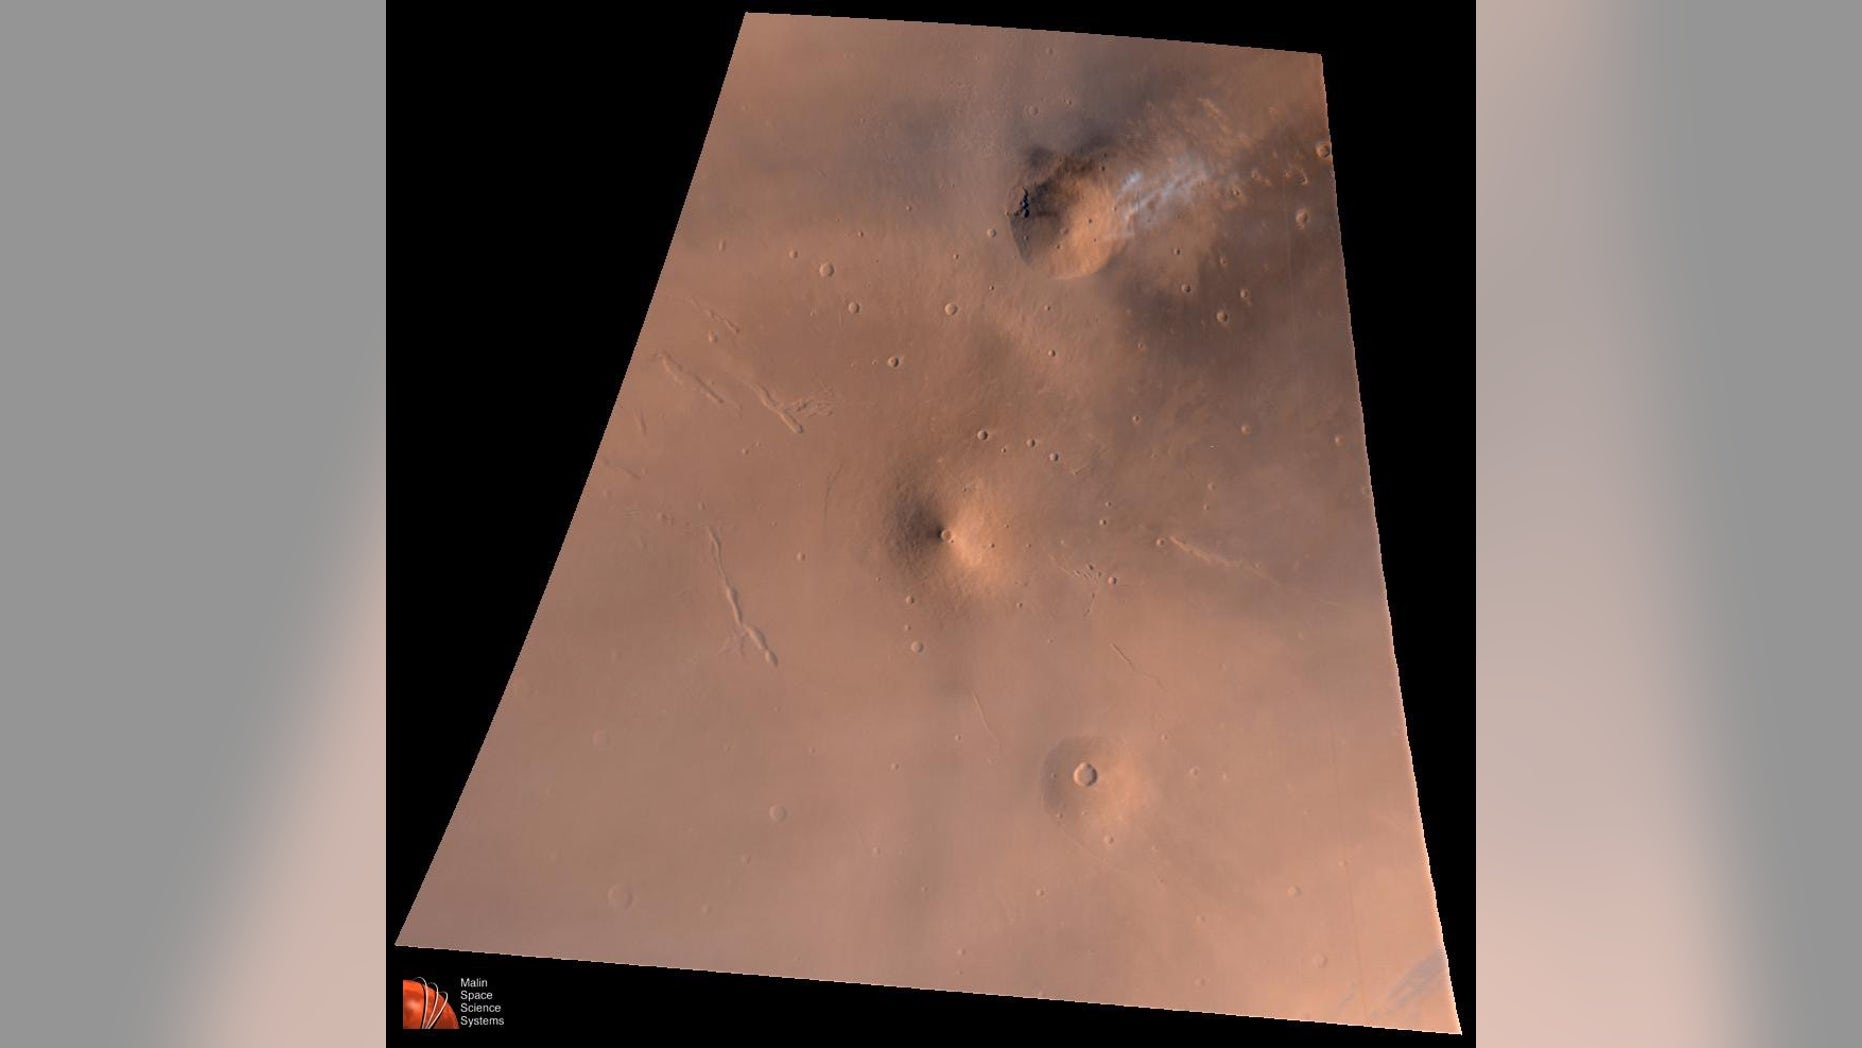 Volcanoes on Mars like Elysium Mons, whose volcanic region is pictured here, grew much slower than their counterparts on Earth, a new study has found.